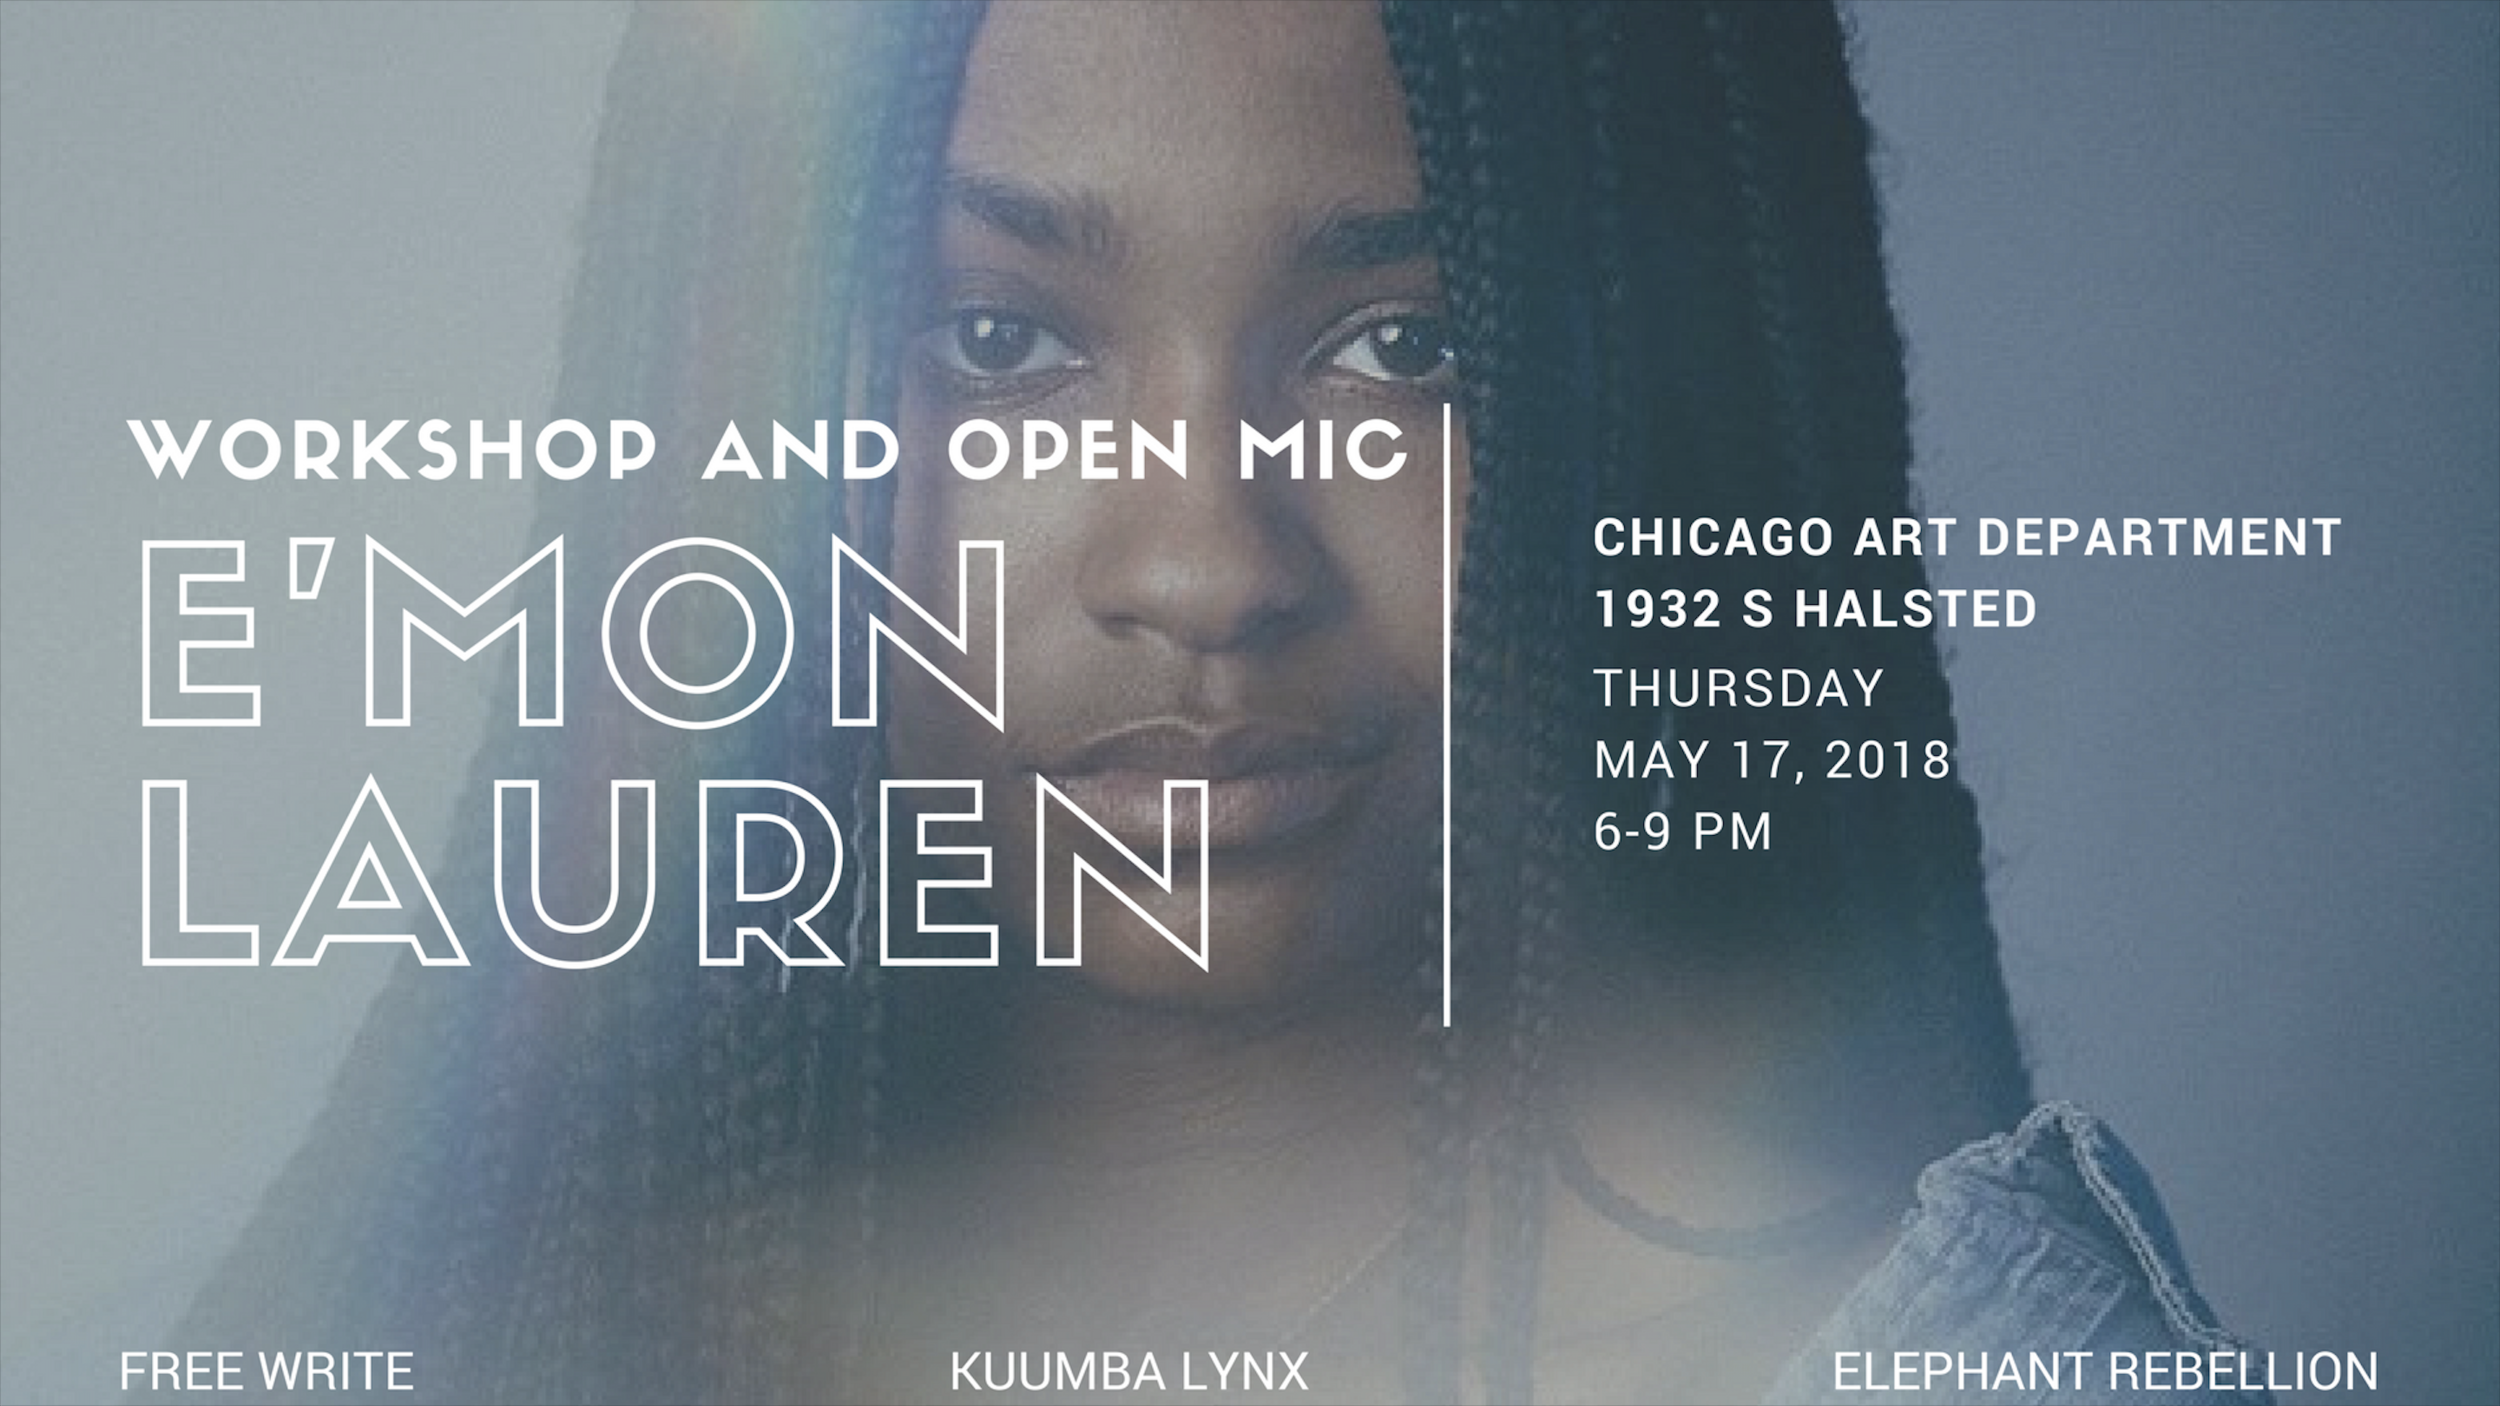 This month's feature performers -  Emon Lauren   E'mon Lauren is from the South and West Side of Chicago. She is a Scorpio enthusiast and a firm believer in Dorthy Dandridge reincarnation. E'mon uses poetry and playwriting to explore a philosophy of hood womanism. She was named Chicago's first Youth Poet Laureate. A former Kuumba Lynx Performance Ensemble slam team member and Louder Than a Bomb champion, E'mon has performed in many venues including The Brave New Voices International Youth Poetry Festival and The Chicago Hip Hop Theatre Fest. She was a 2016 finalist for The Gwendolyn Brooks Open Mic Award. E'mon has been published in The BreakBeat Poets: New American Poetry in the Age of Hip-Hop, The Down Dirty Word, and elsewhere. She has been featured in Chicago Magazine, The Chicago Tribune, and on WGN Radio. She is a member of Young Chicago Authors Teaching Artist Corps. Her first chapbook COMMANDO, was published by Haymarket Books, Fall of 2017.